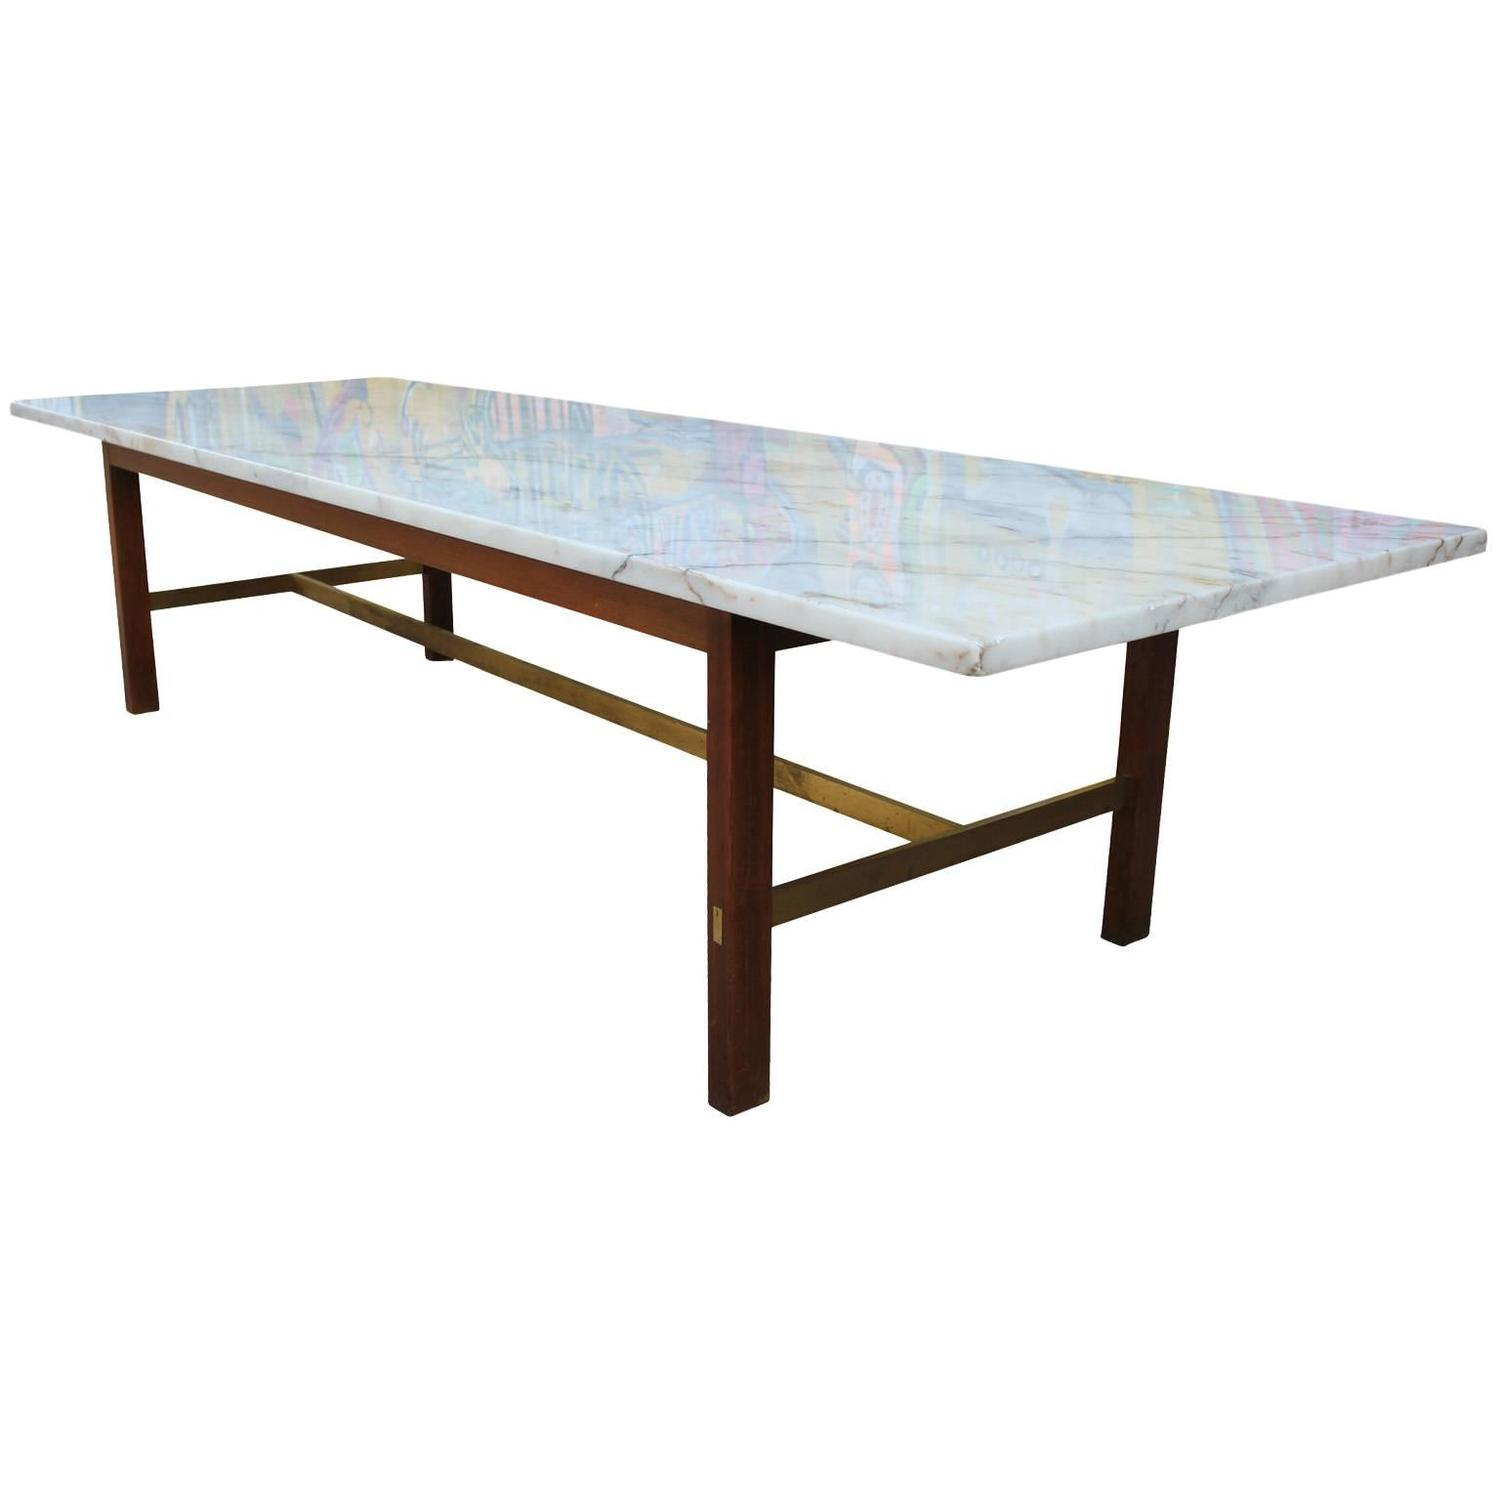 Paul McCobb Marble and Brass Coffee Table at 1stdibs